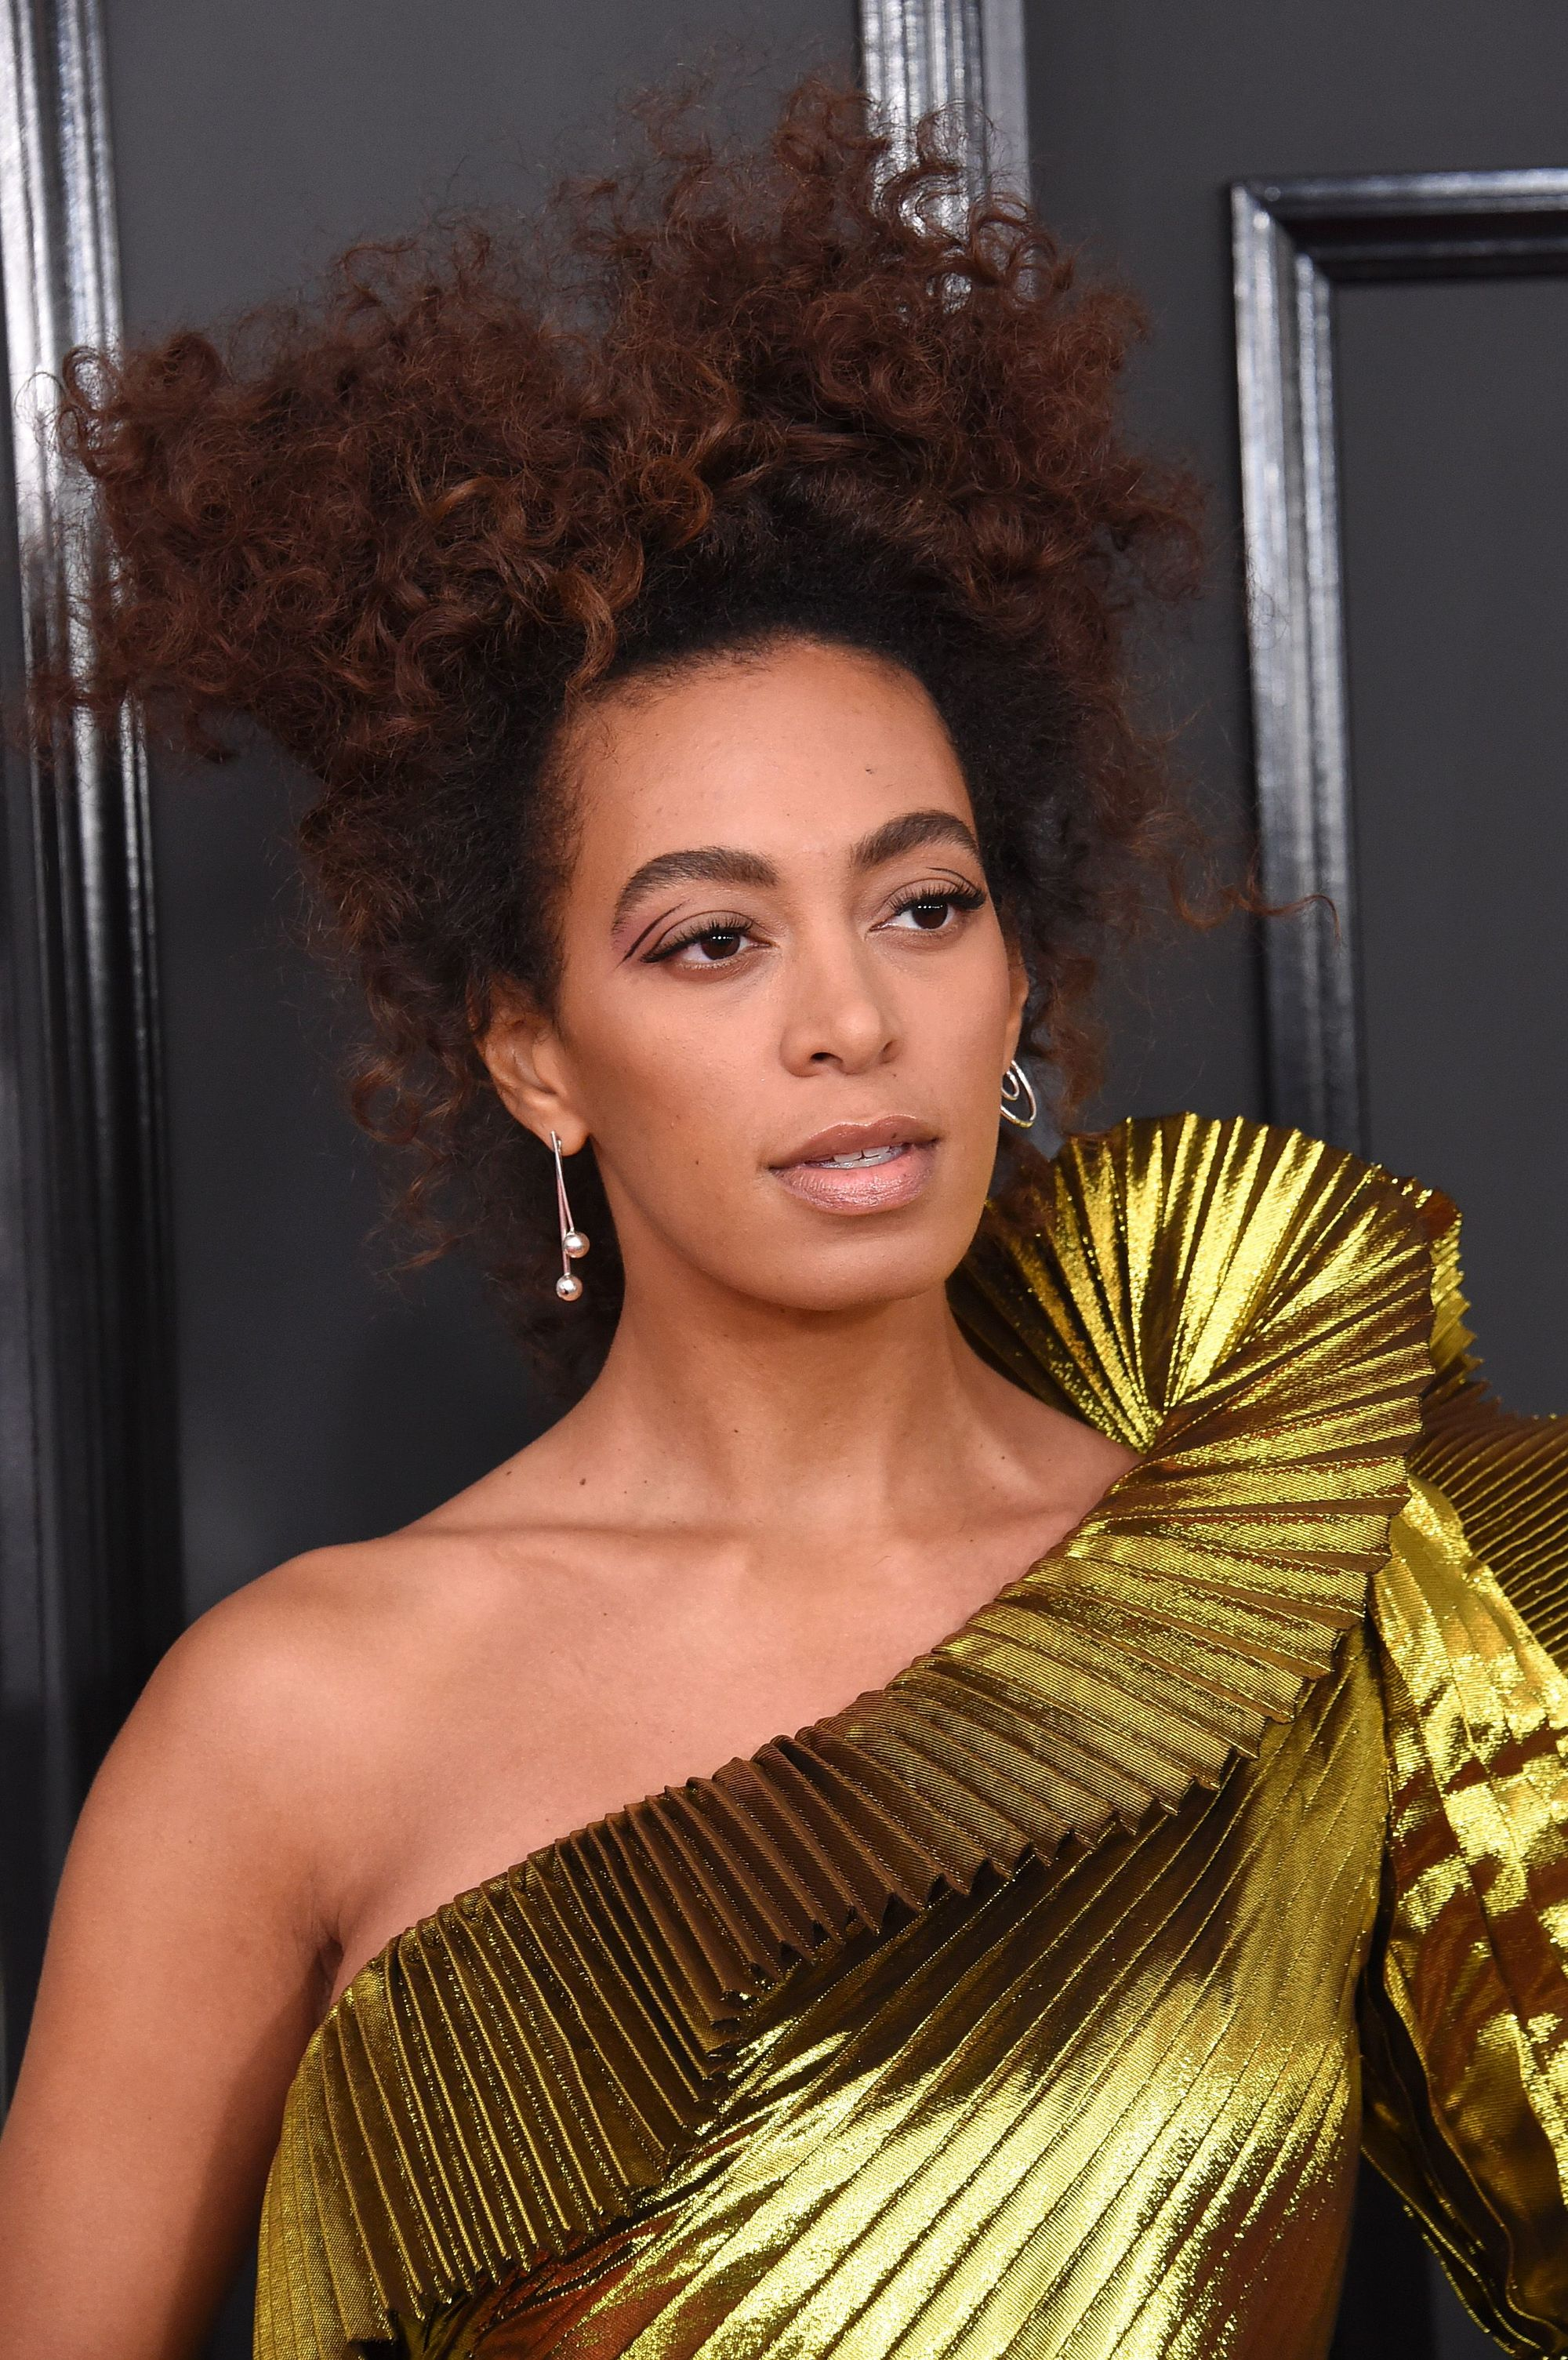 solange knowles wearing a gold pleated gown with her curly afro hair in an updo style